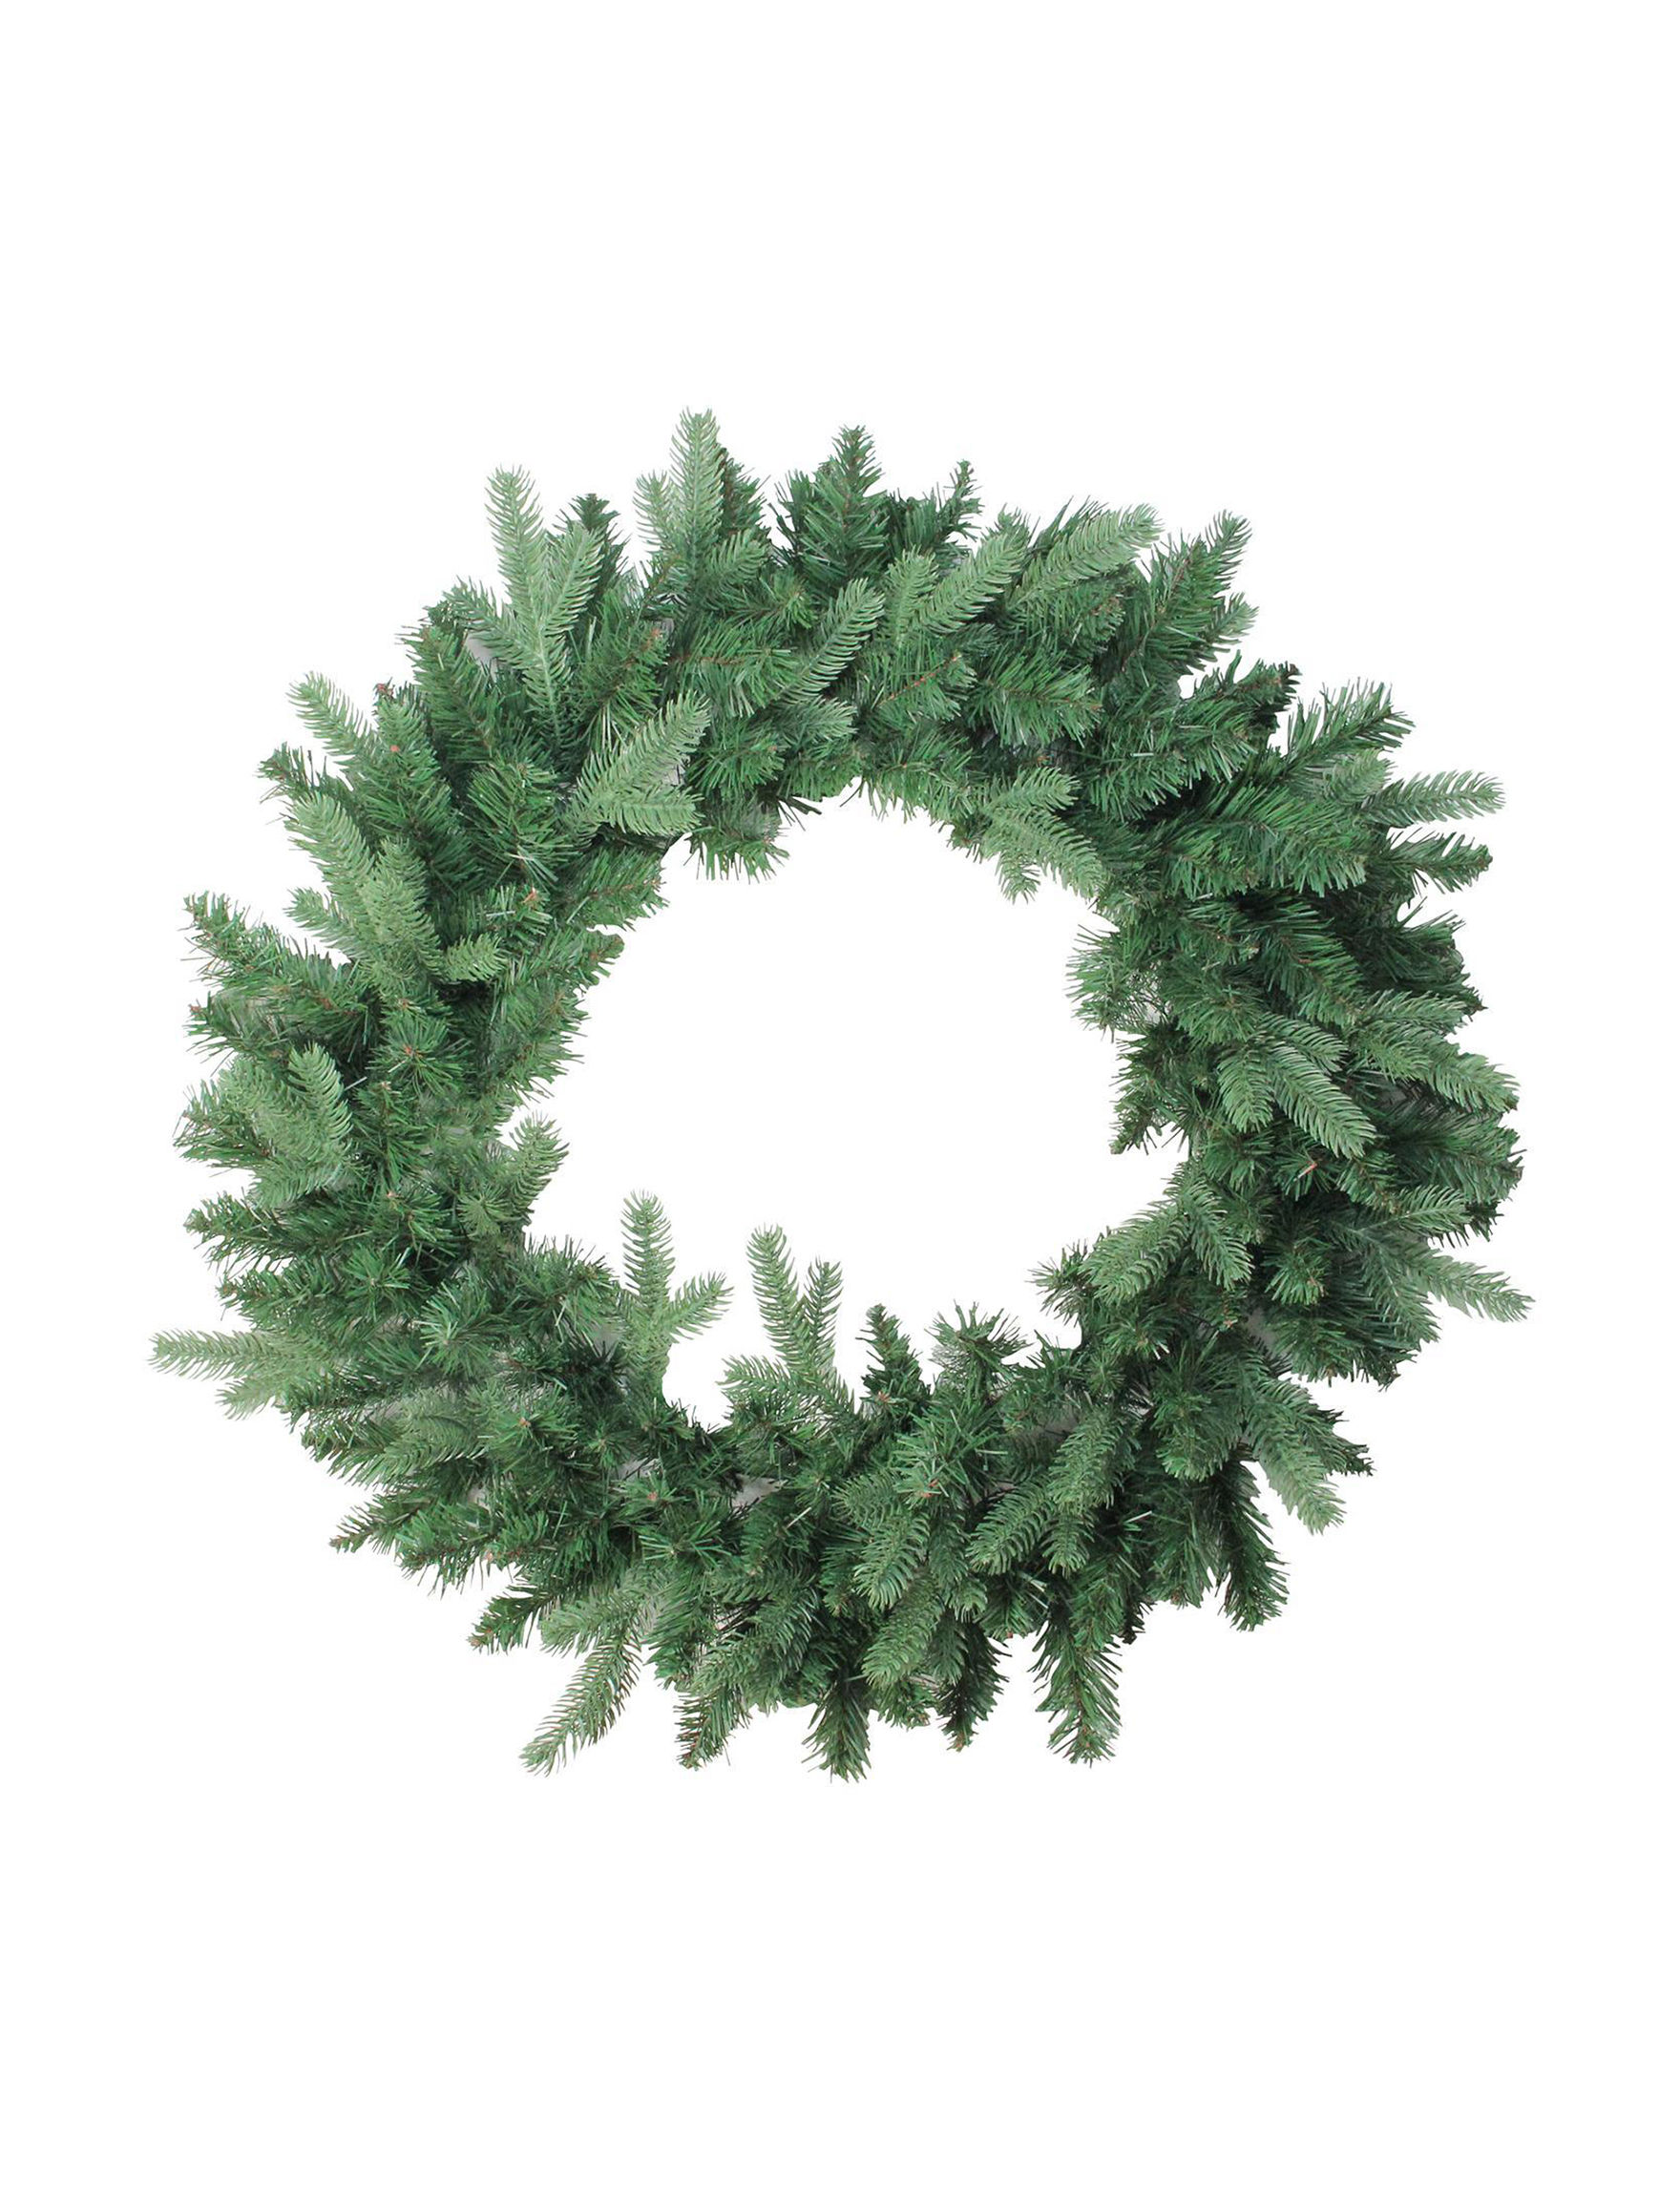 Northlight Green Wreaths & Garland Holiday Decor